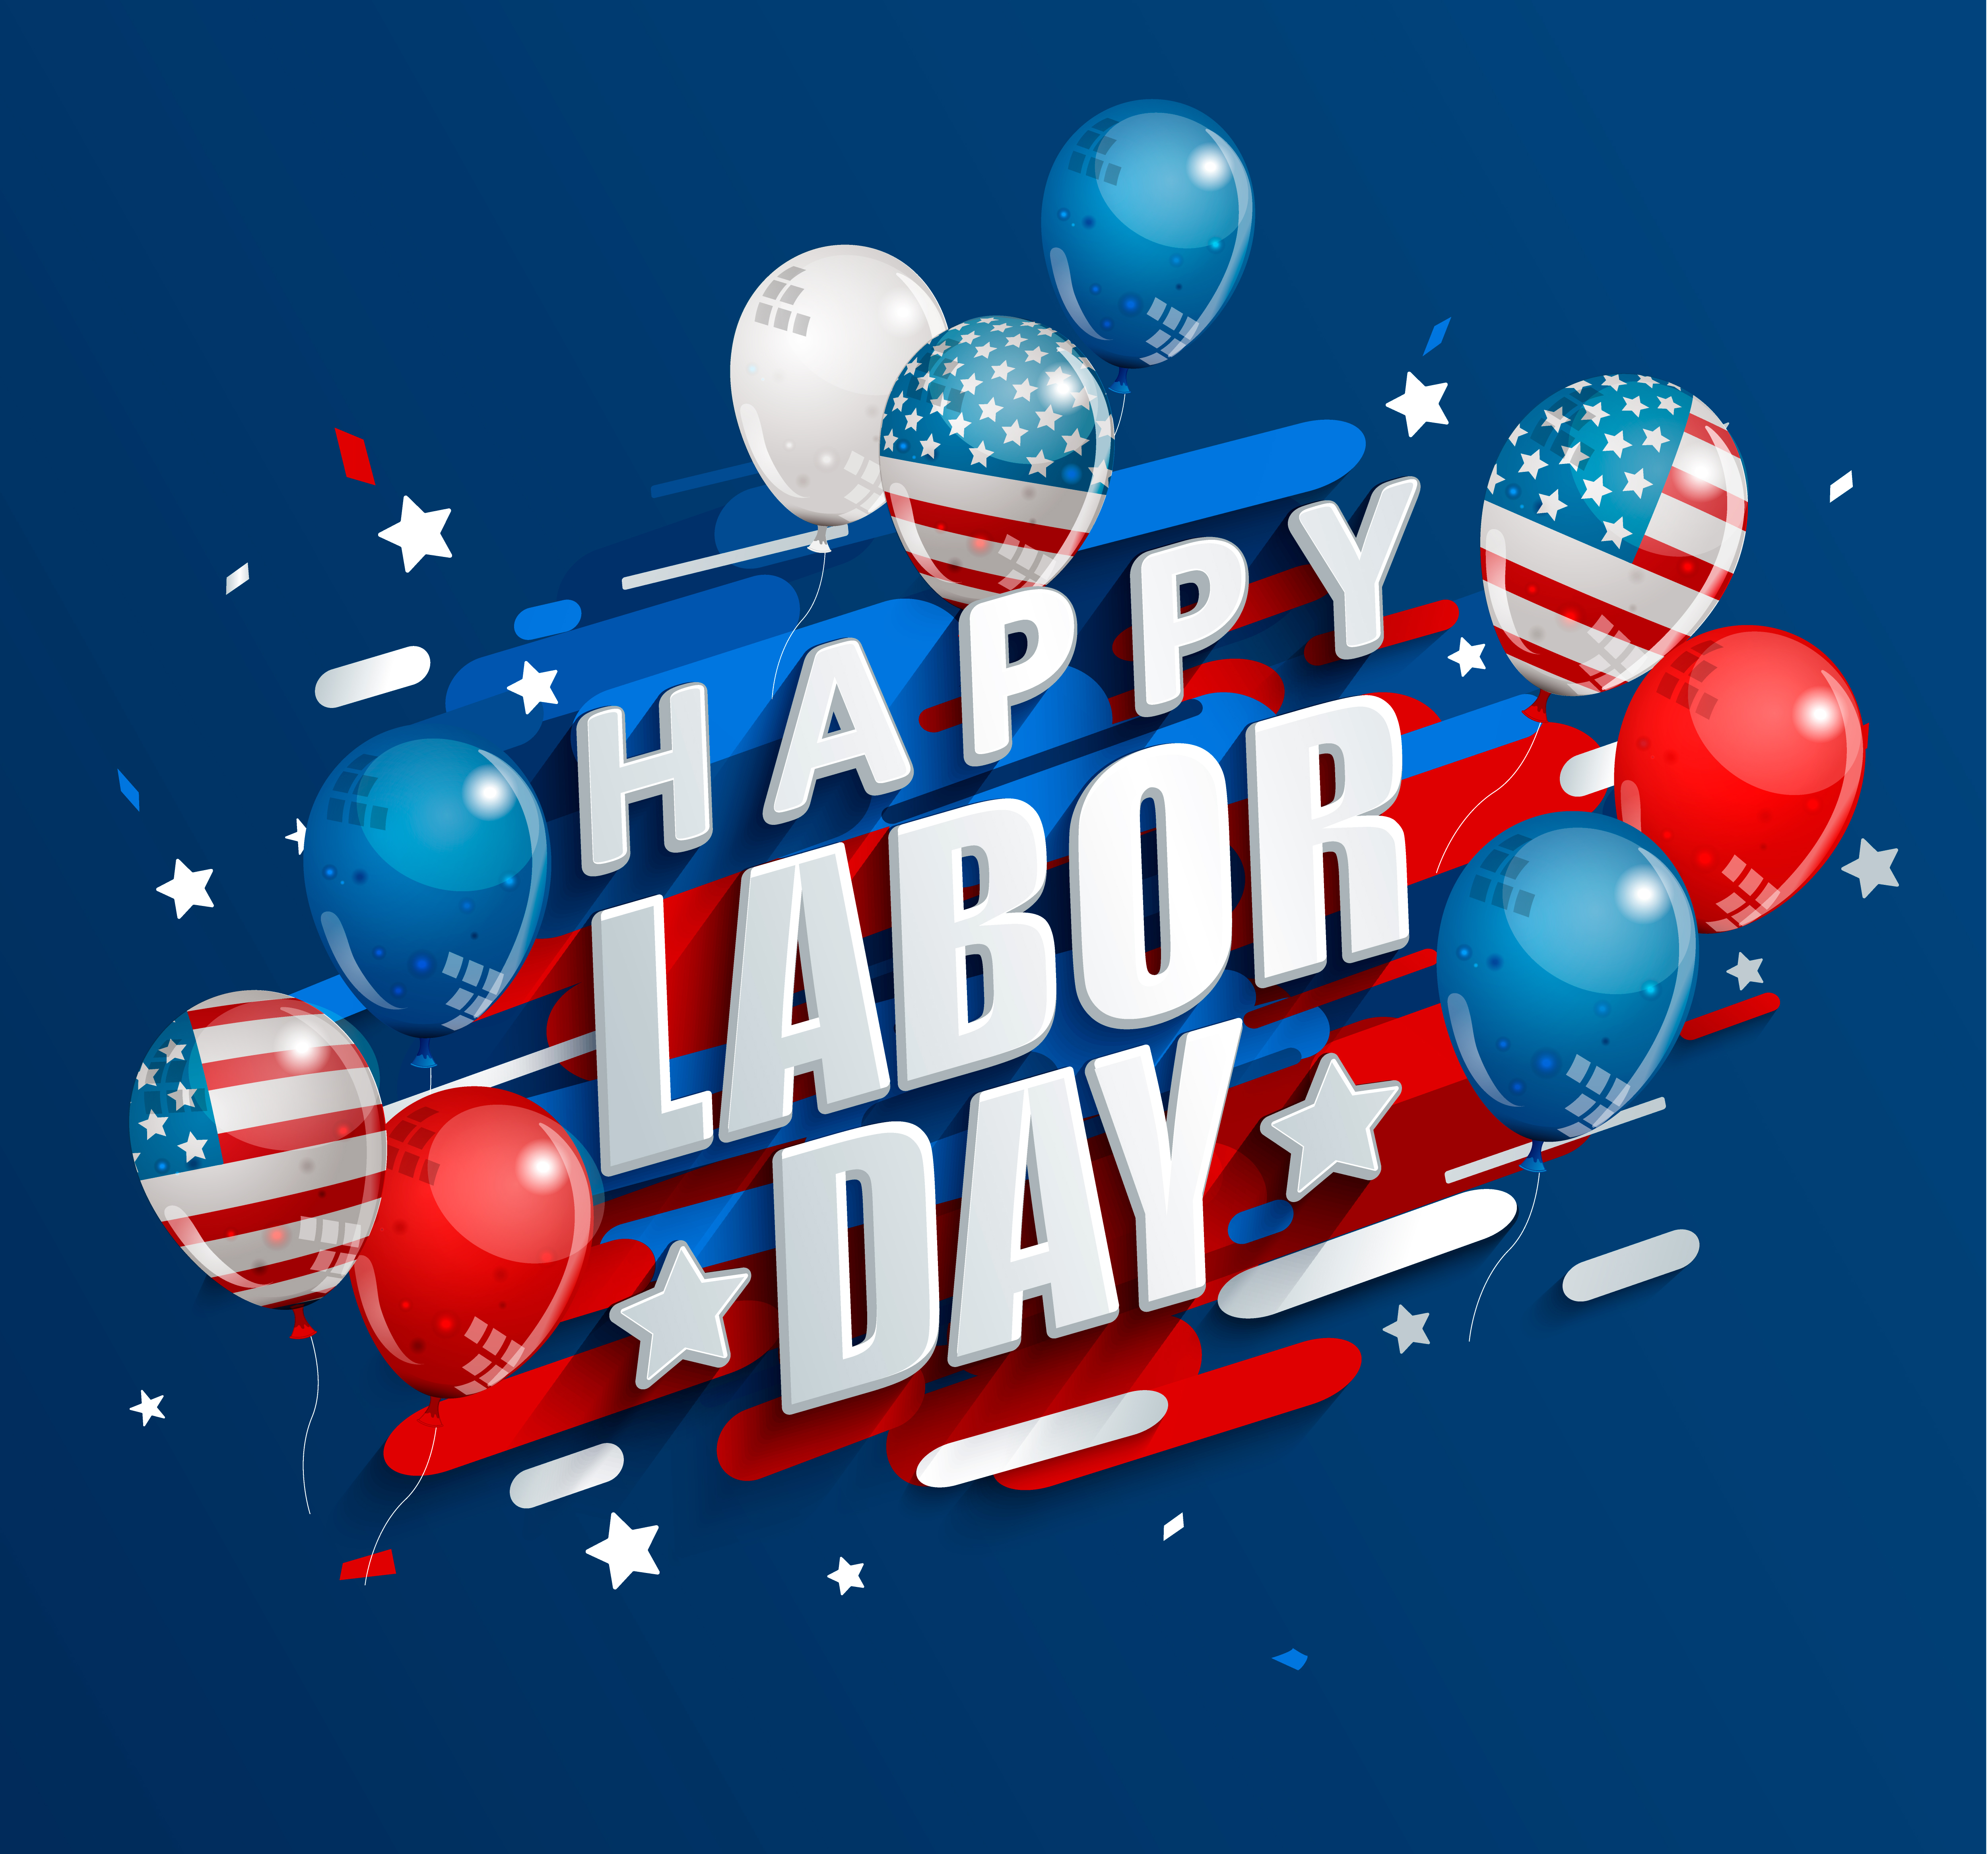 Happy Labor Day holiday banner. 332309 - Download Free Vectors, Clipart Graphics & Vector Art